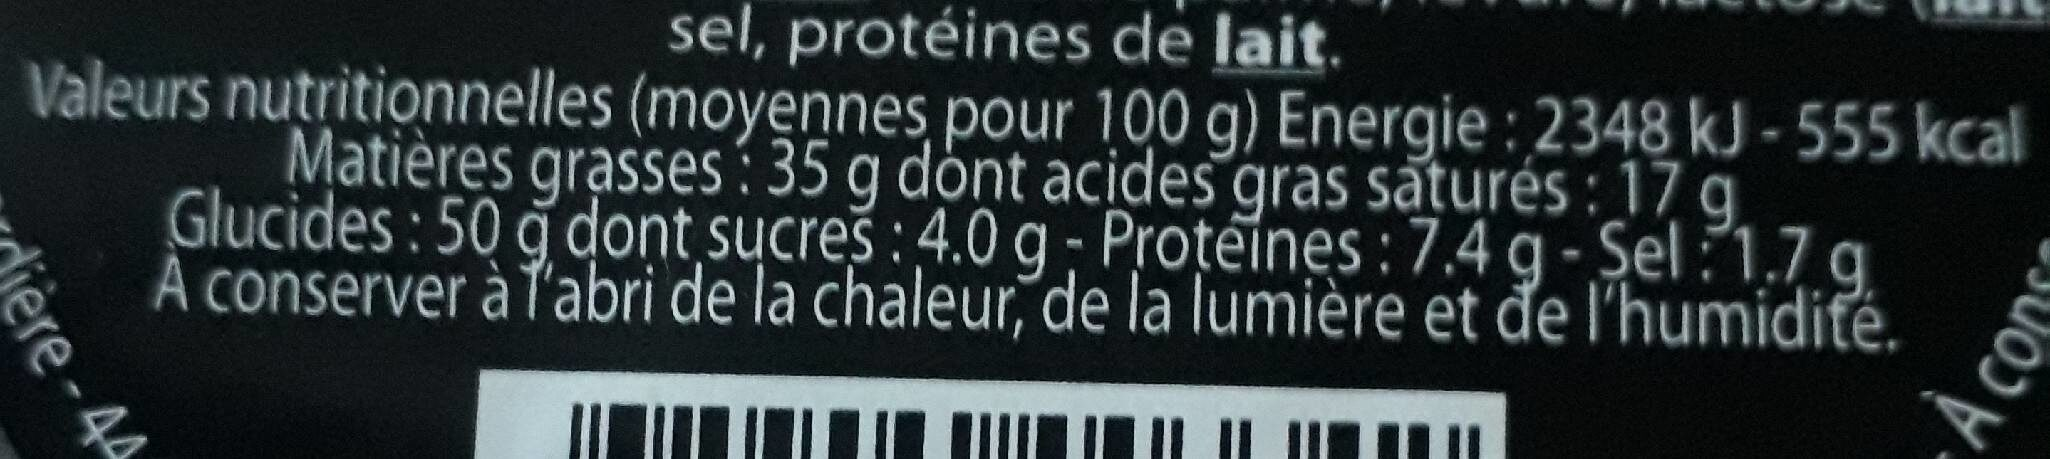 Croûtons - Nutrition facts - fr